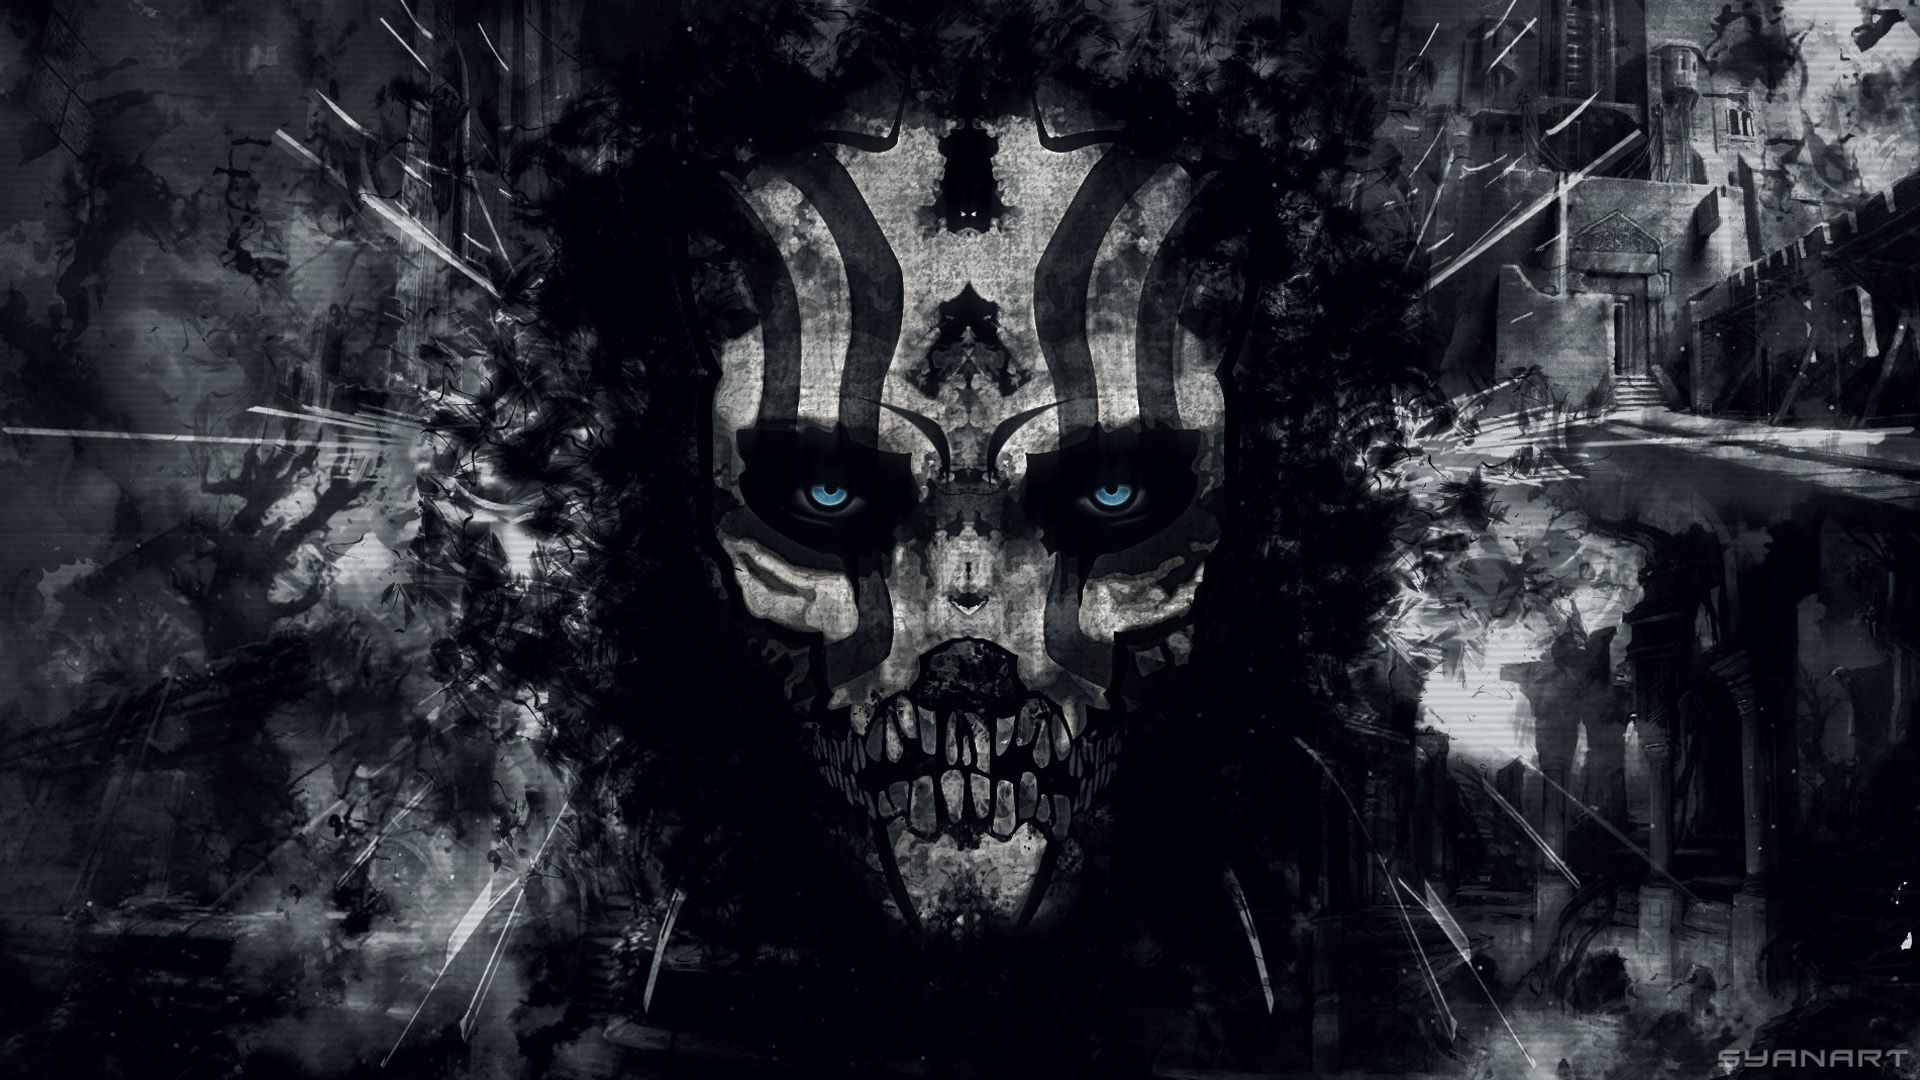 Death Skull Wallpapers   Top Death Skull Backgrounds 1920x1080